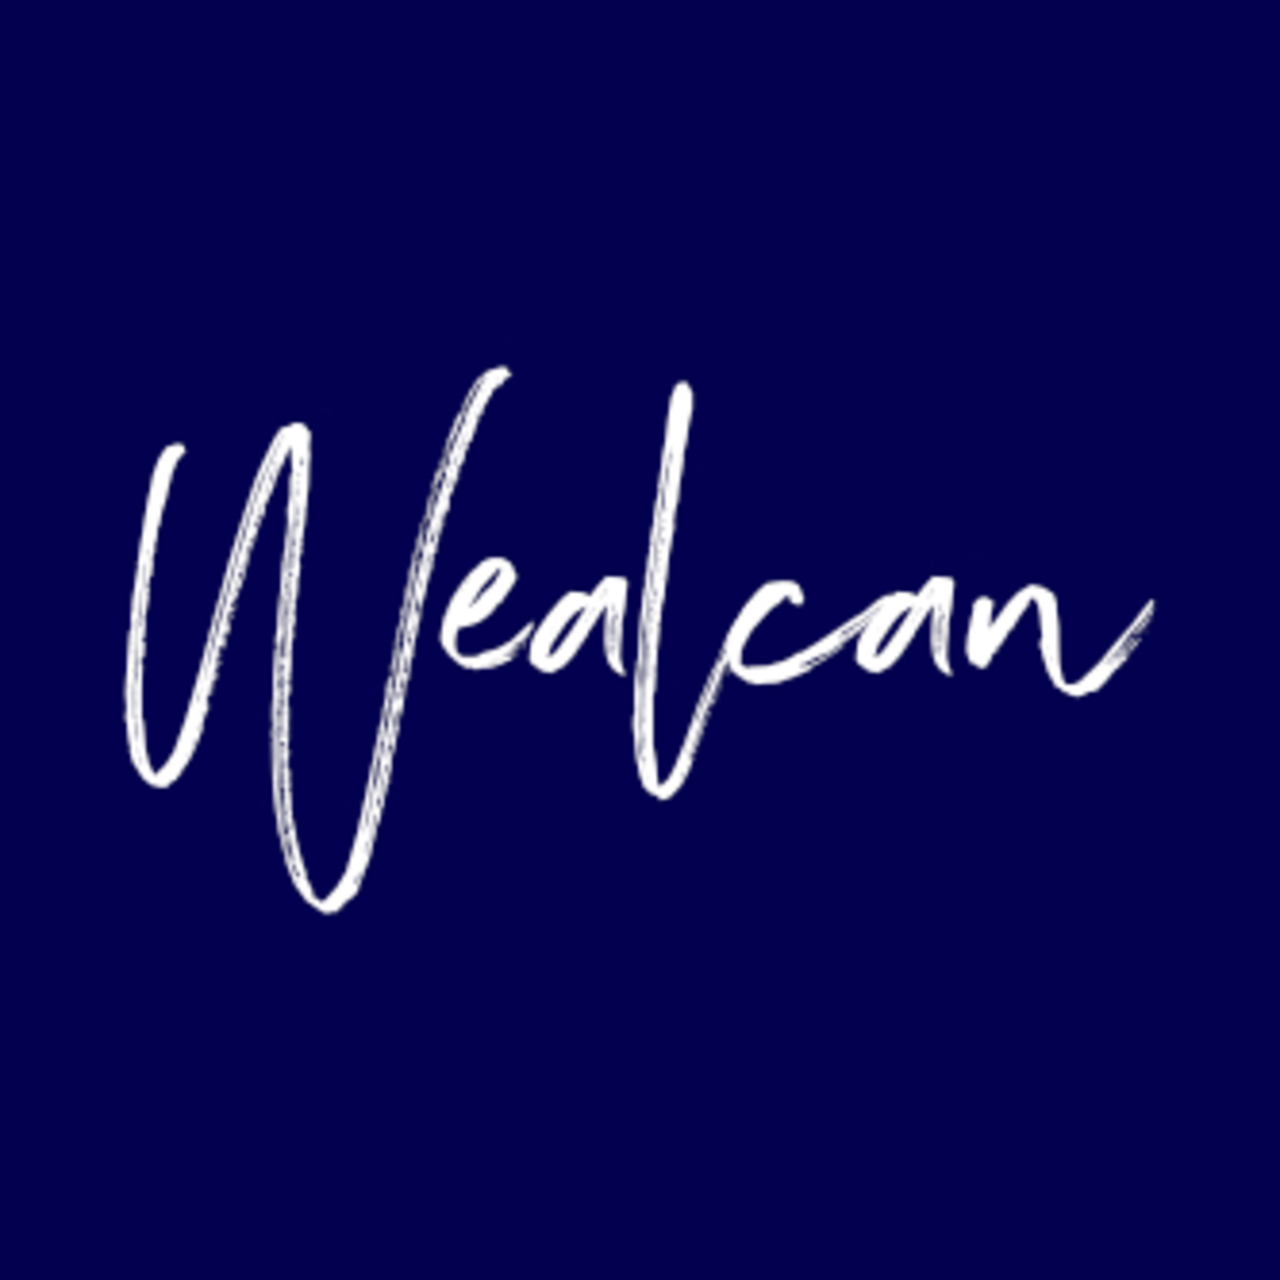 Wealcan Medical Equipment, Supplies & Orthotics - Shop Local - Essential Business in Leavenworth KS